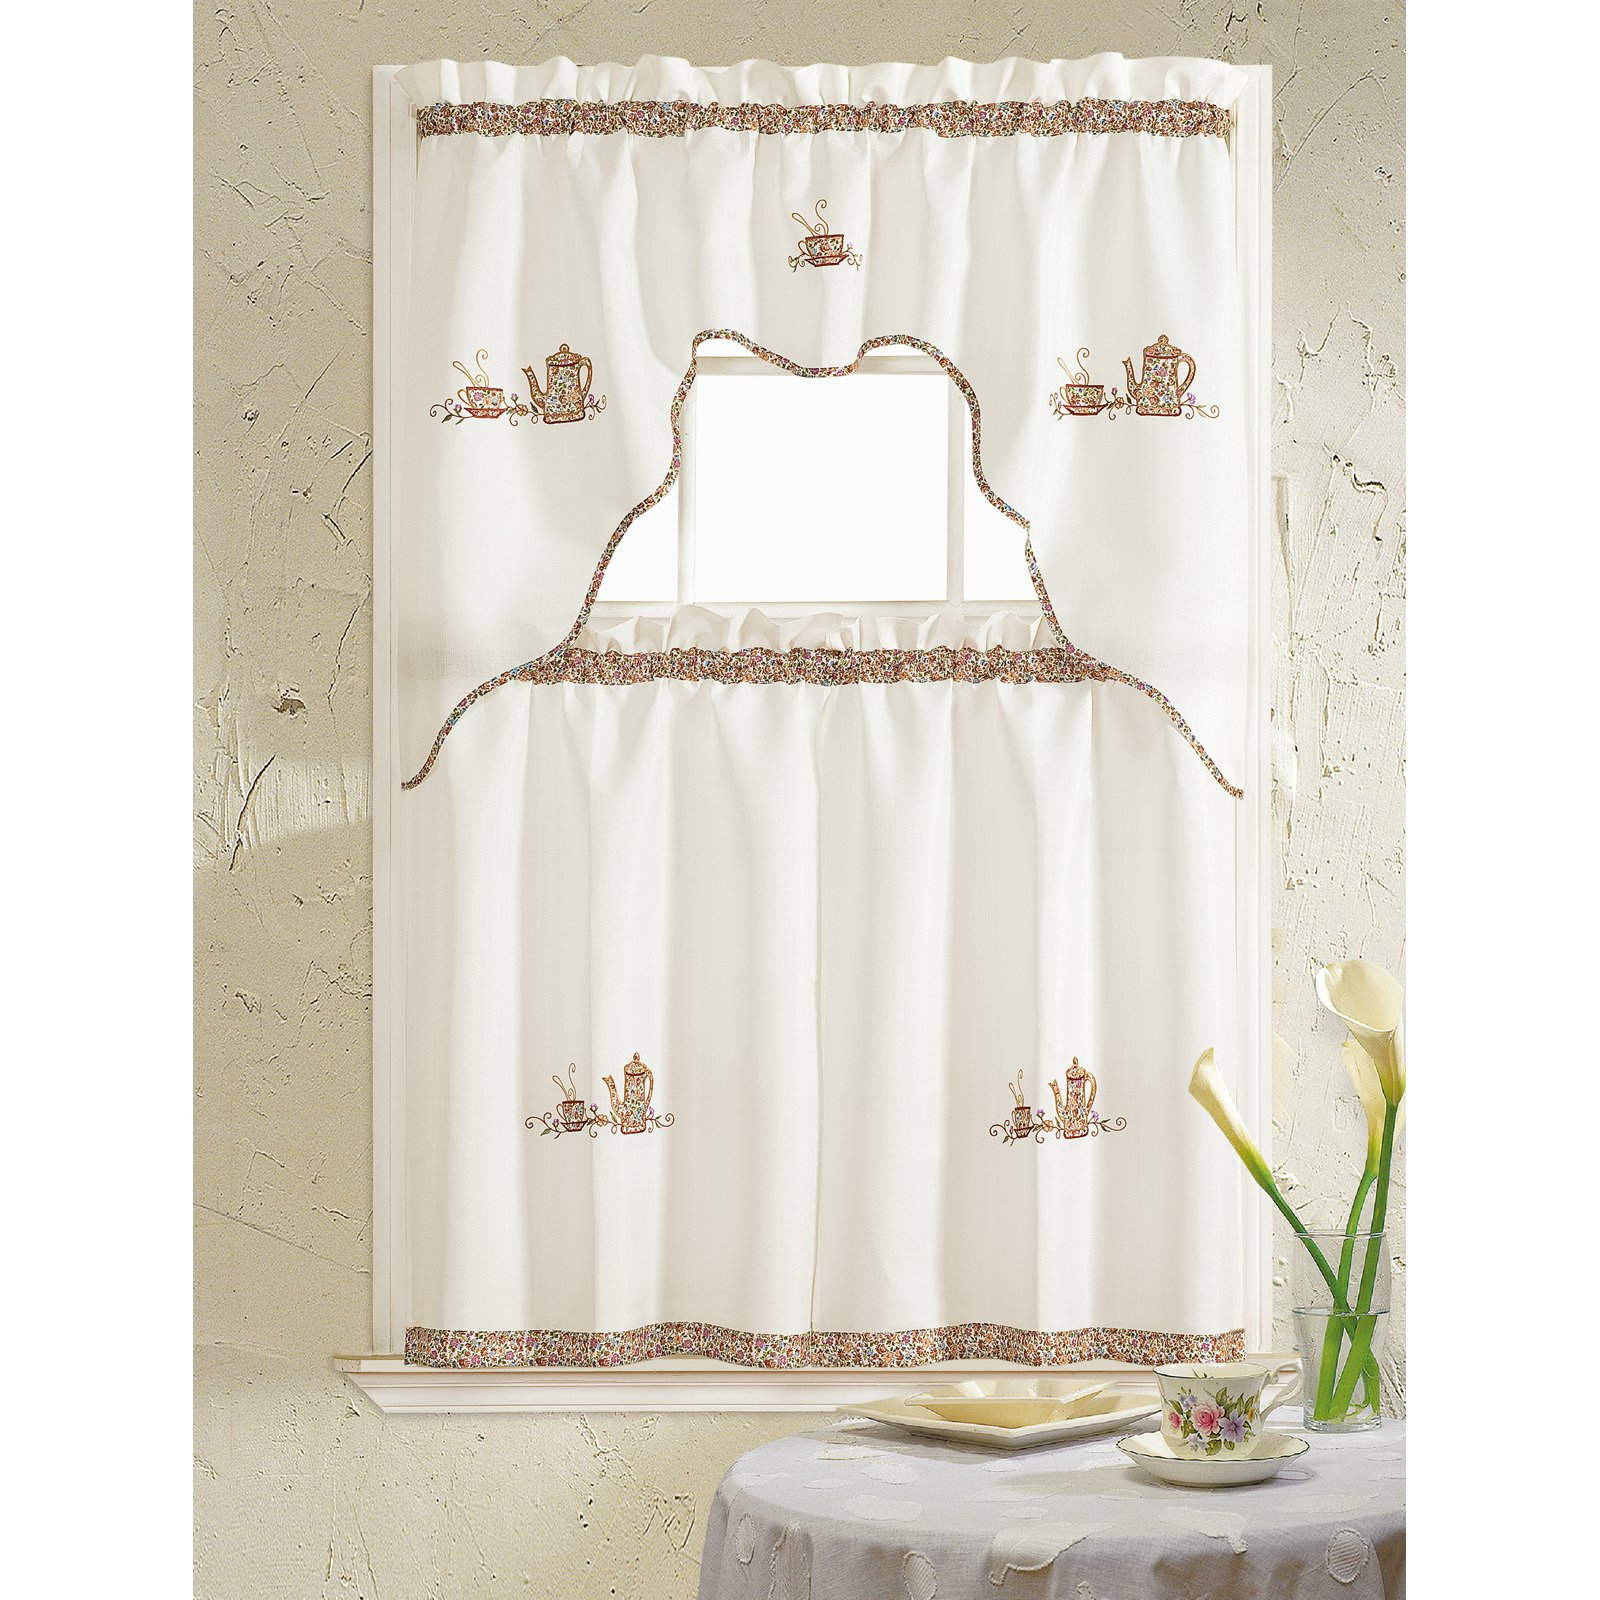 Rt Designers Collection Grand Coffee Embroidered Kitchen Intended For Coffee Embroidered Kitchen Curtain Tier Sets (Gallery 2 of 20)